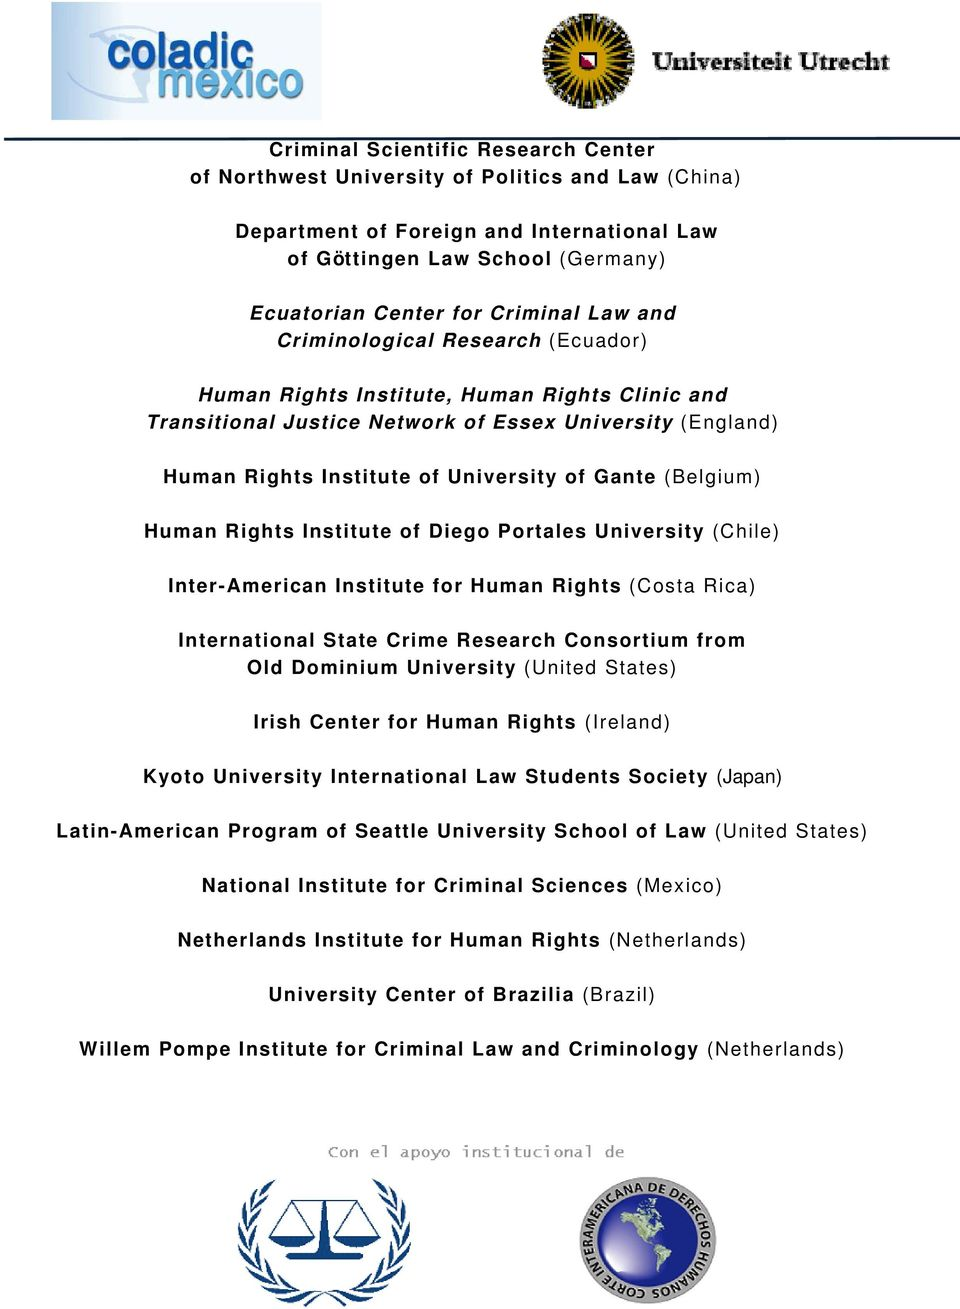 (Belgium) Human Rights Institute of Diego Portales University (Chile) Inter-American Institute for Human Rights (Costa Rica) International State Crime Research Consortium from Old Dominium University